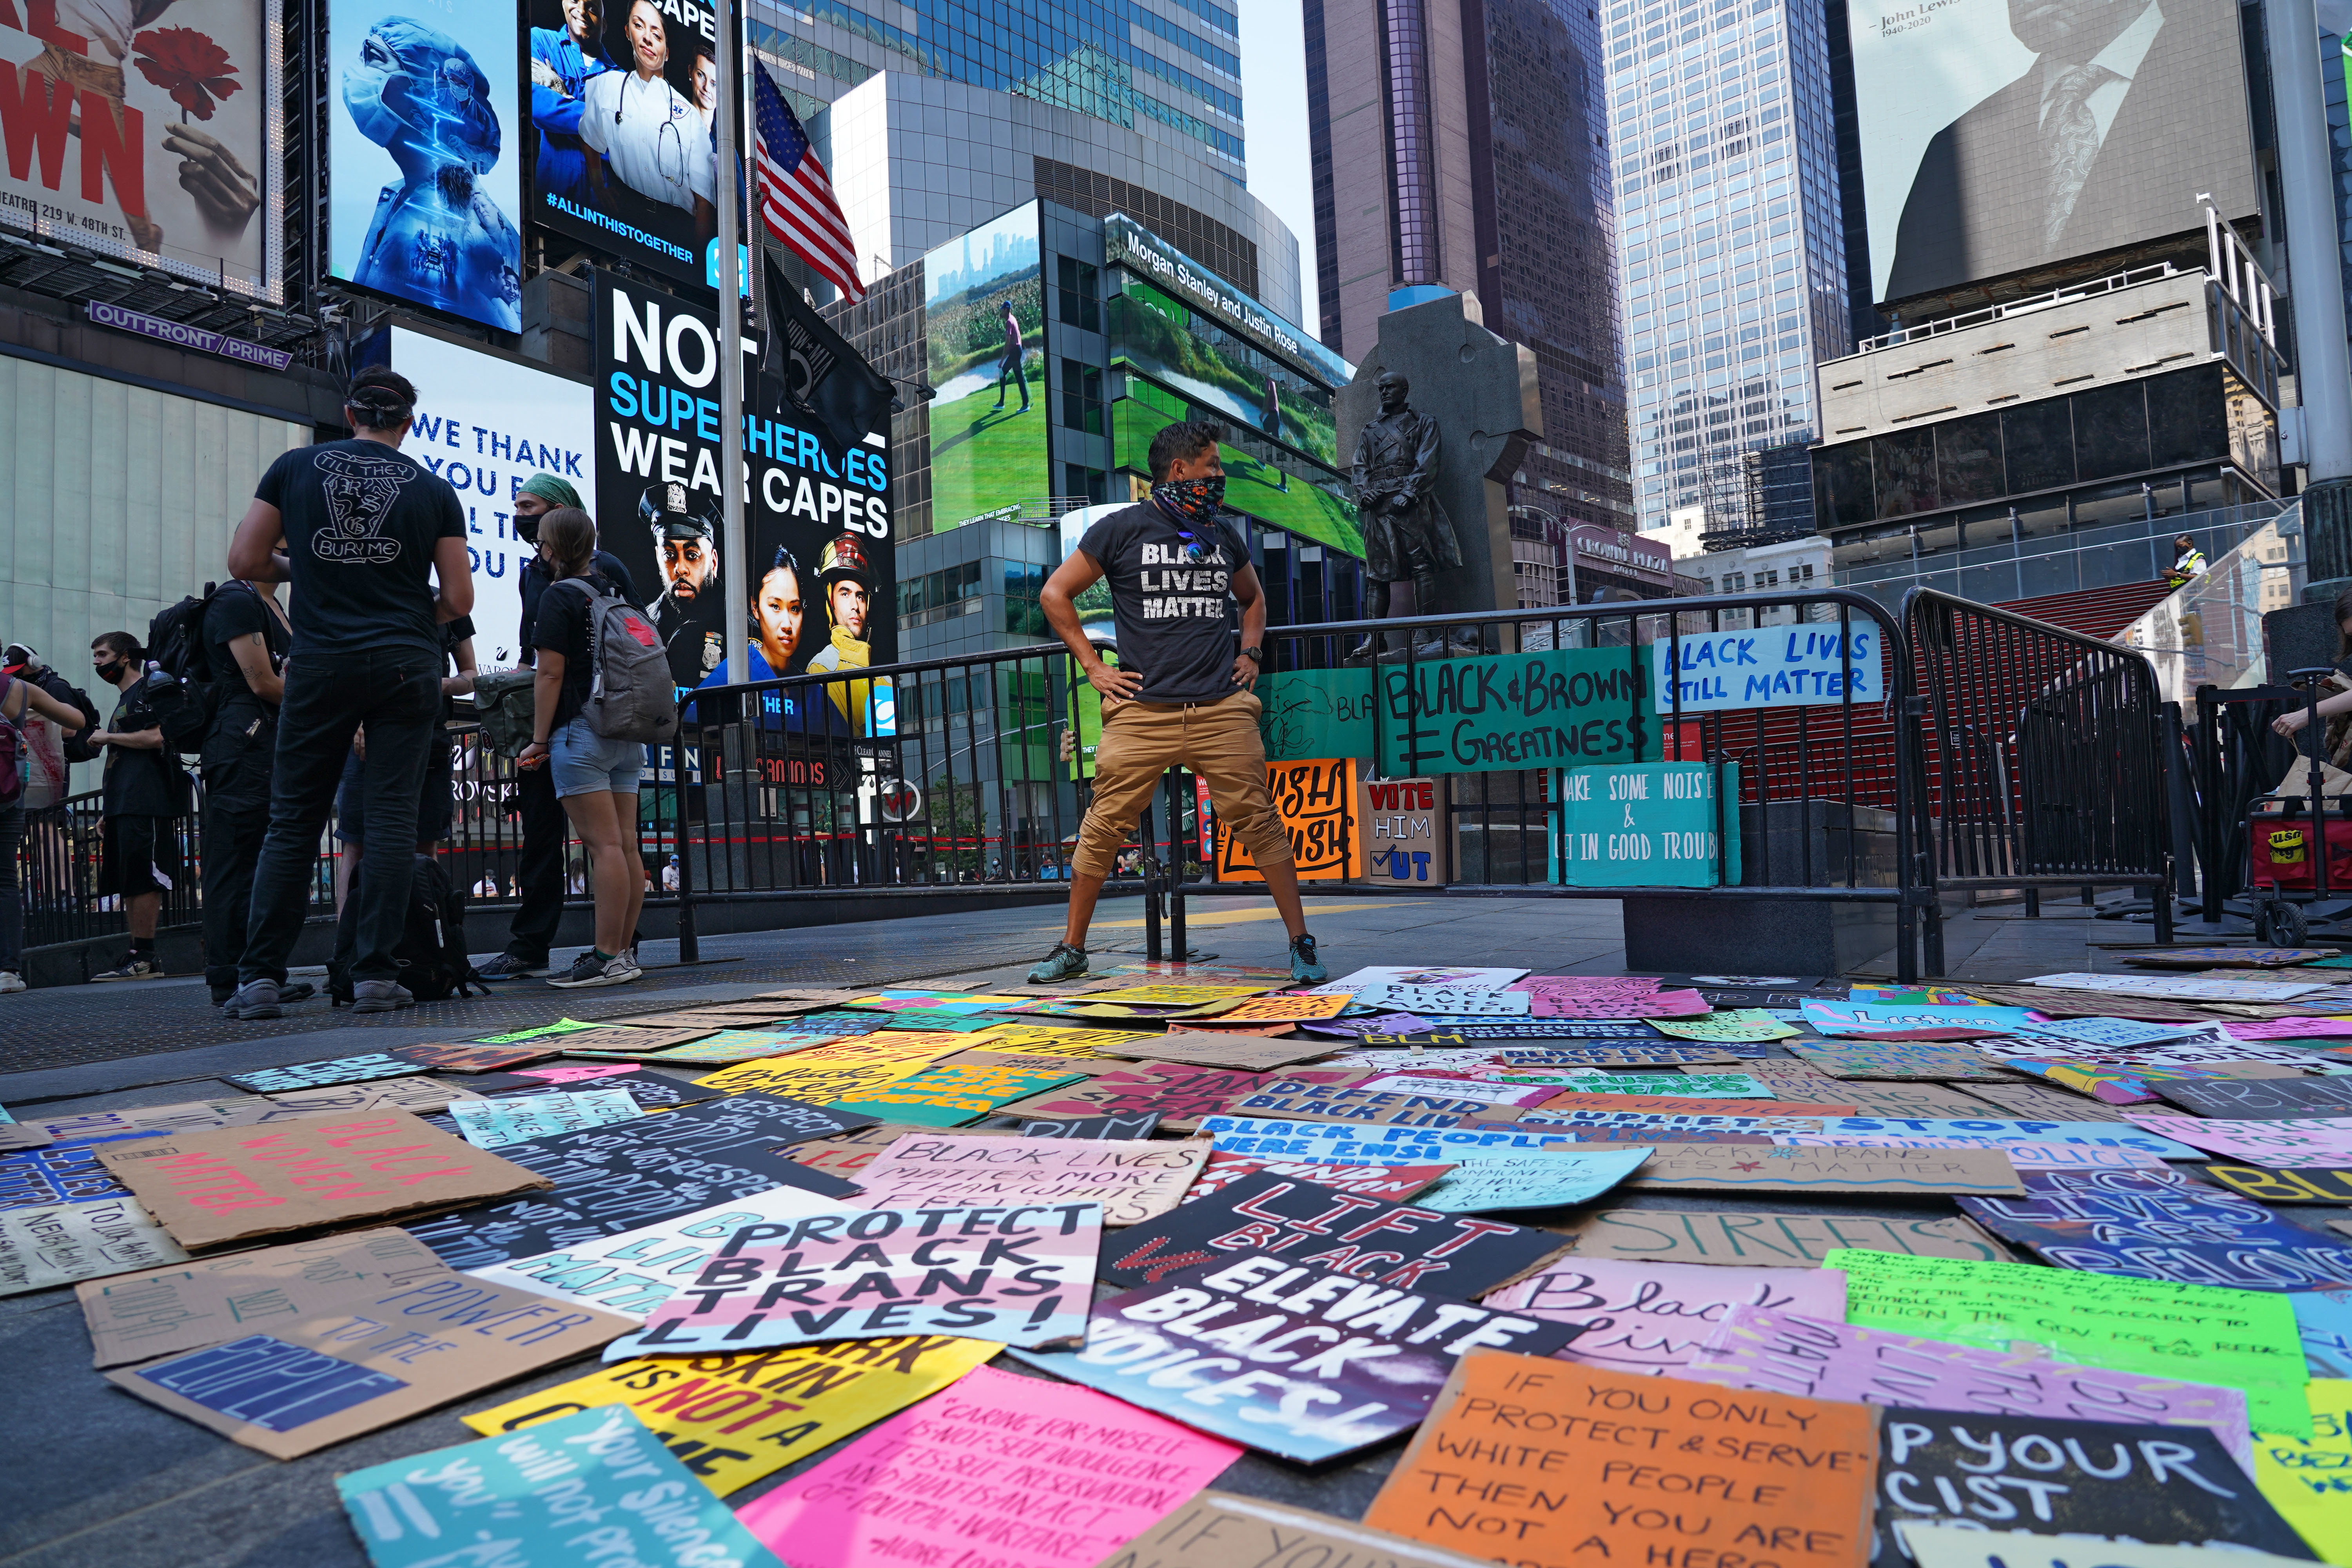 A protester selects a placard at Times Square during the Black lives matter protest. Protesters took to the streets to demand the arrest of an officer responsible for the death of Breonna Taylor on March 13, 2020 in Louisville, Kentucky. (Photo by Ron Adar / SOPA Images/Sipa USA)